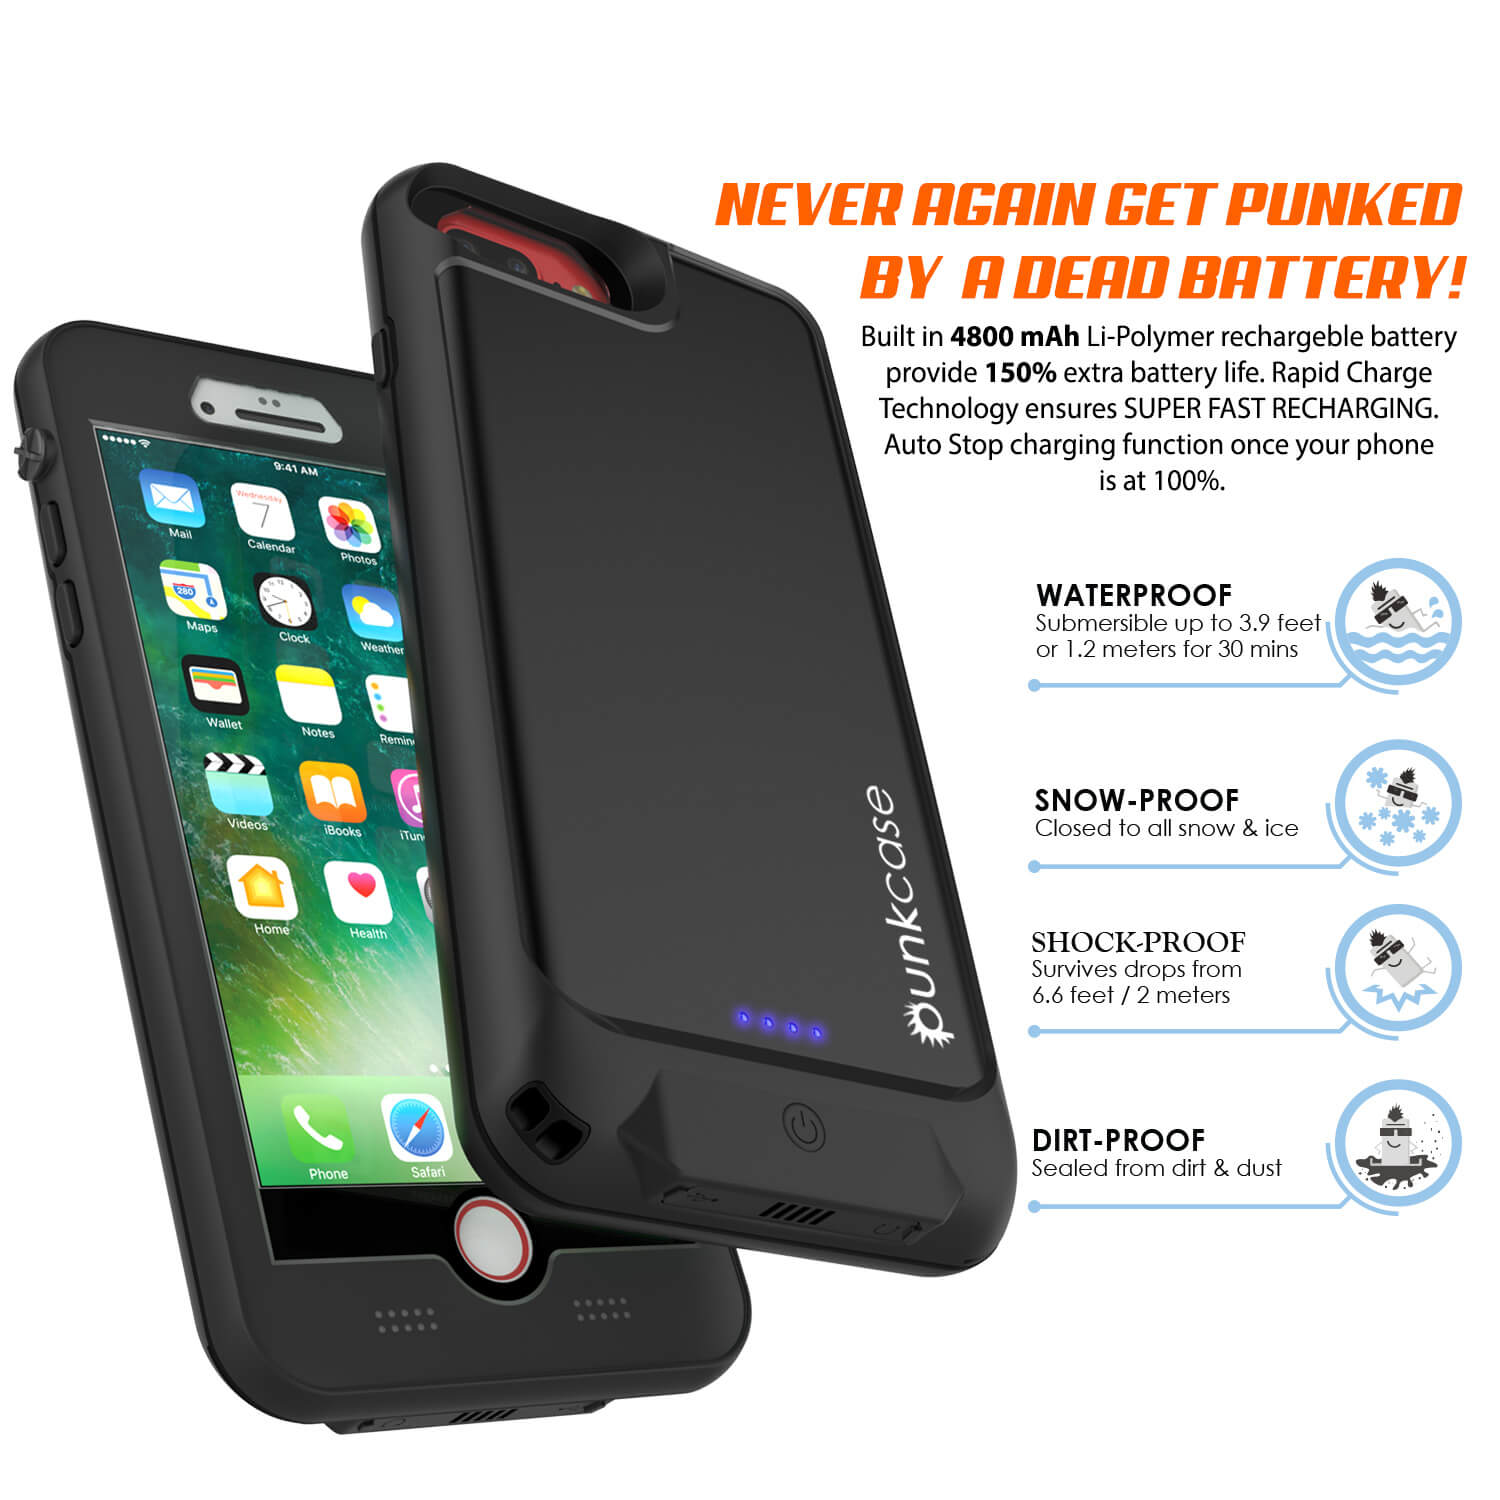 timeless design d721f 66455 PunkJuice iPhone 8+ Plus External Battery Case Black - Waterproof